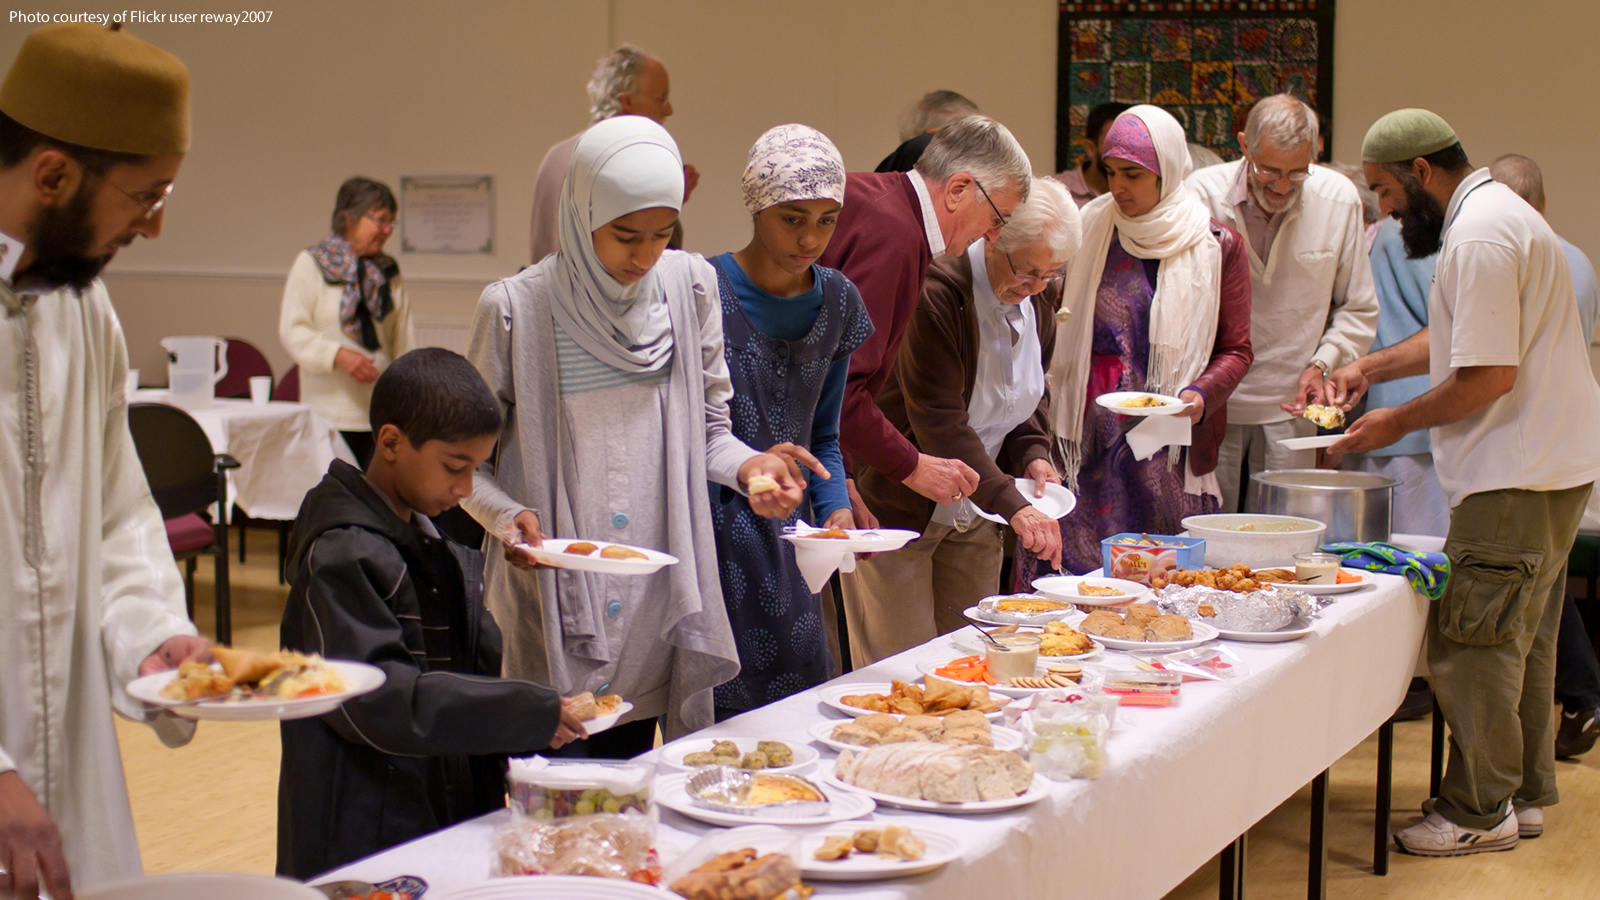 Interfaith Iftar in the United Kingdom